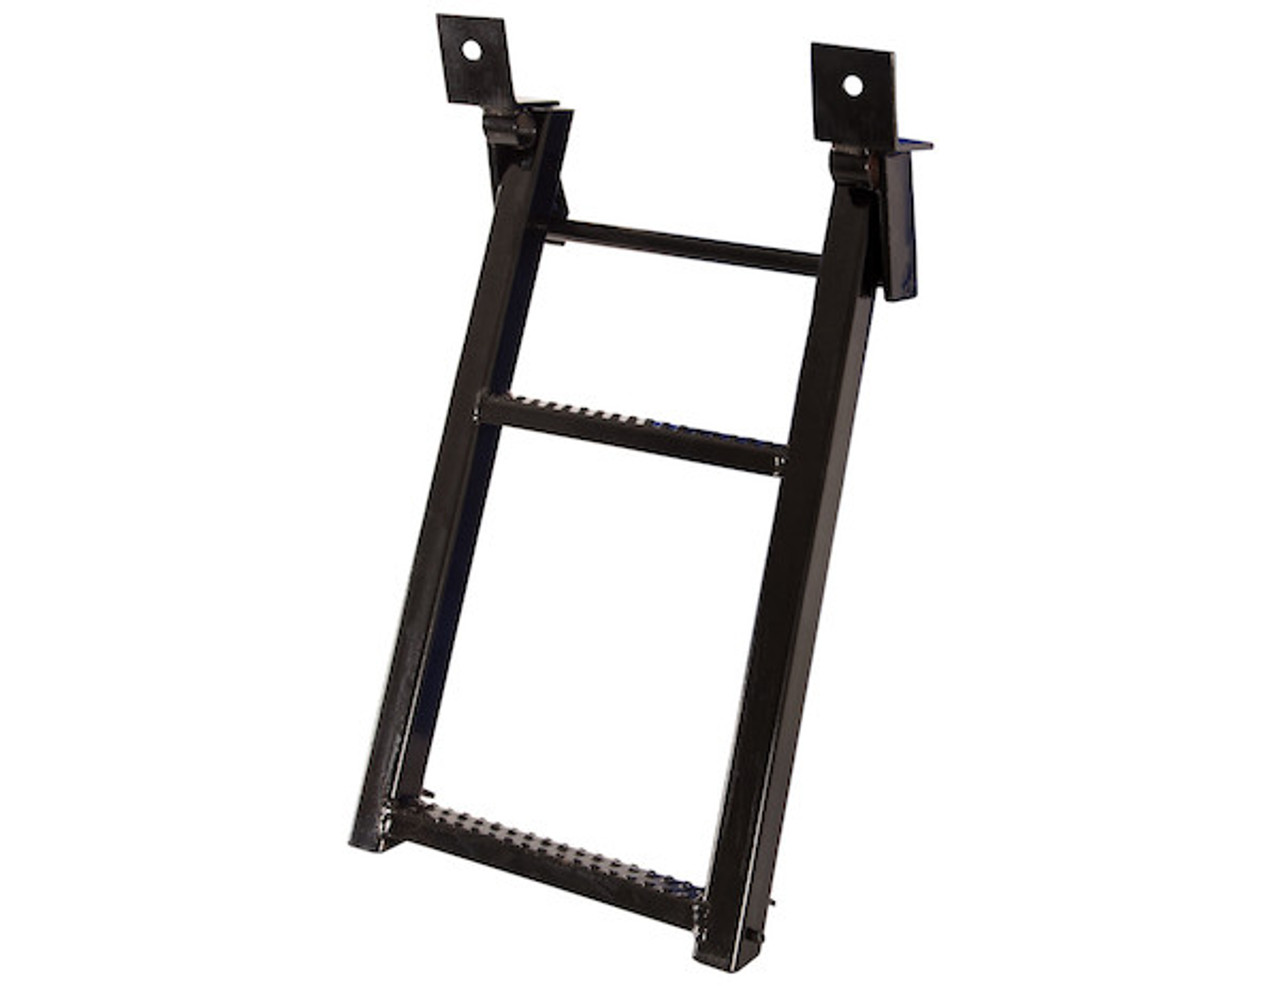 RS2 Buyer's 2-Rung Black Retractable Truck Steps With Nonslip Tread - 17.38 X 30.25 Inch